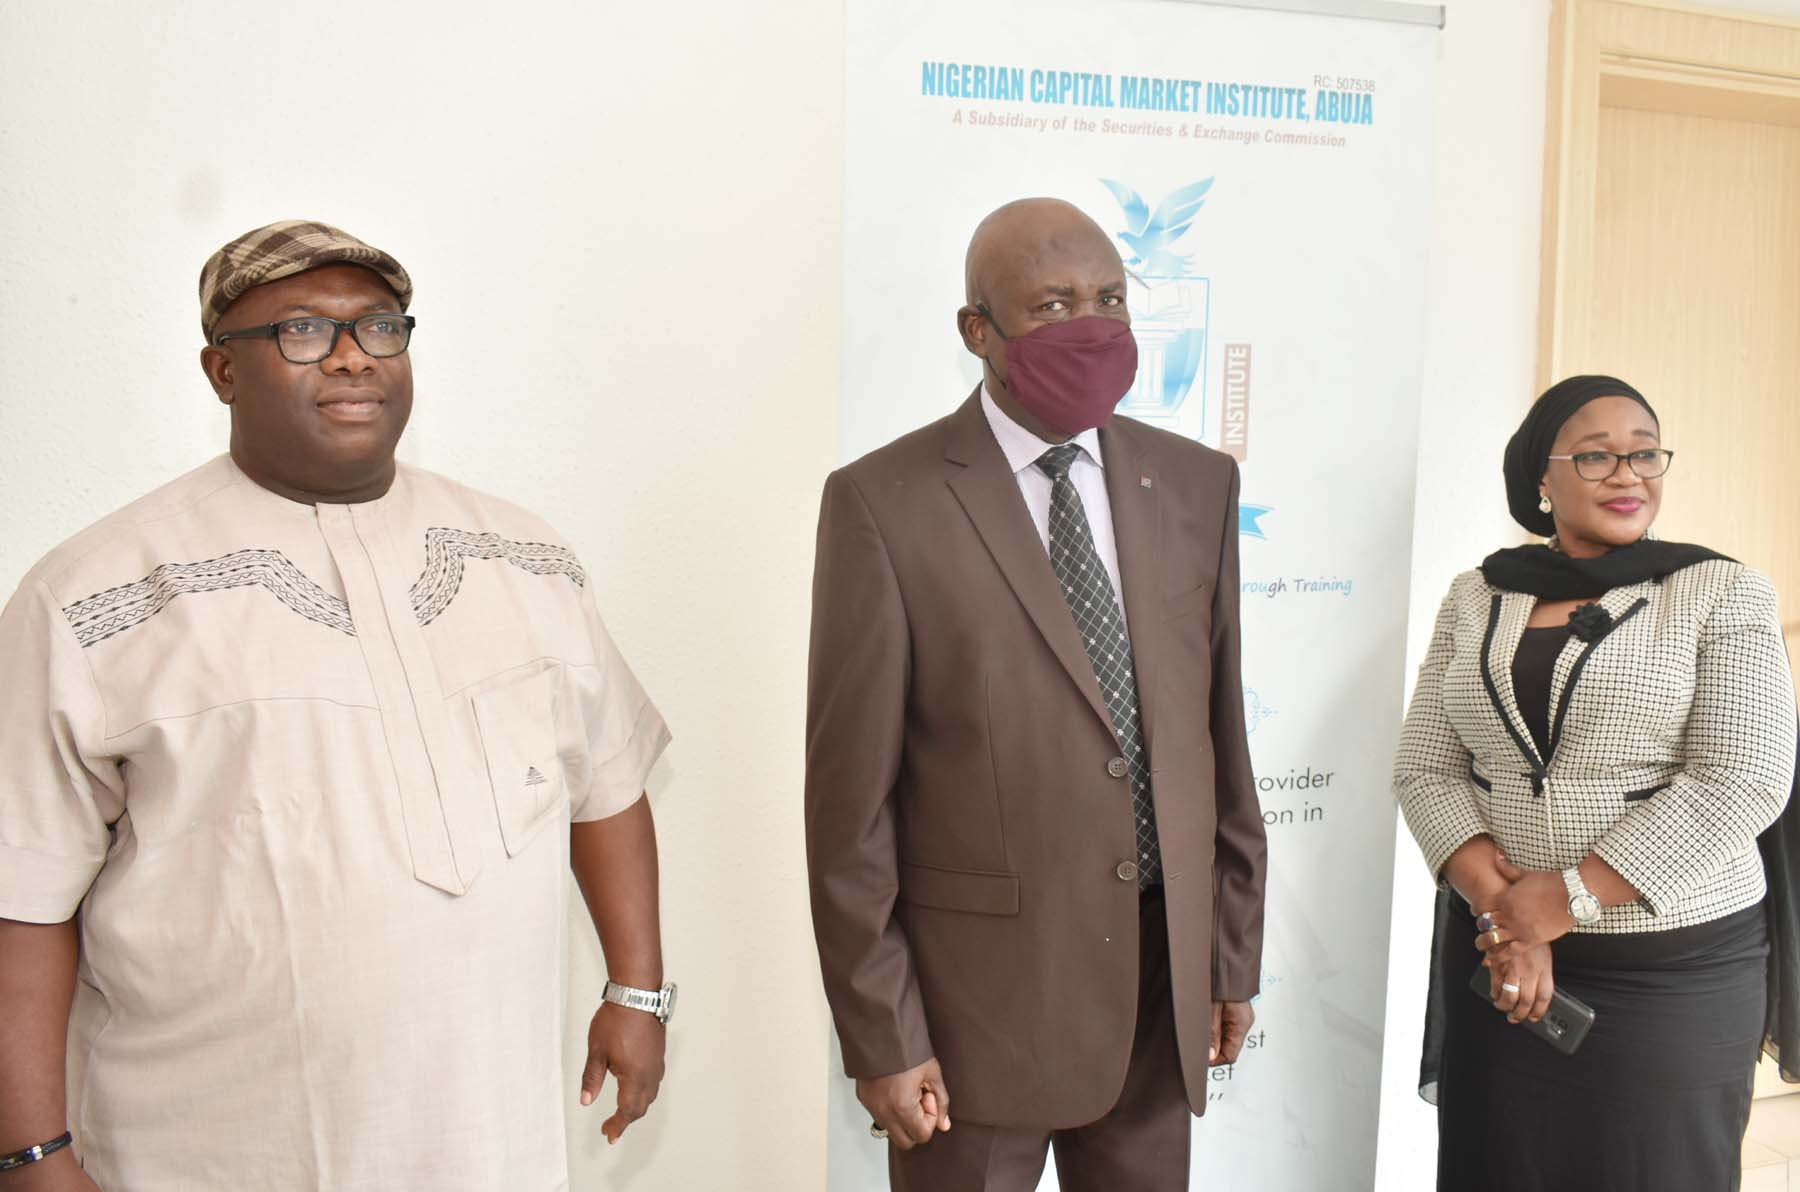 L-R,  Head Programs/Secretary of the Board, Nigerian Capital  Market Institute Barr Isikong Isong, Managing Director NCMI Mr  Ismaila  Ville and Head Marketing, Consultancy, Research and  Publications NCMI Mrs Sadaatu Faruk during a Media Briefing on the  Activities of the Institute in Abuja, weekend